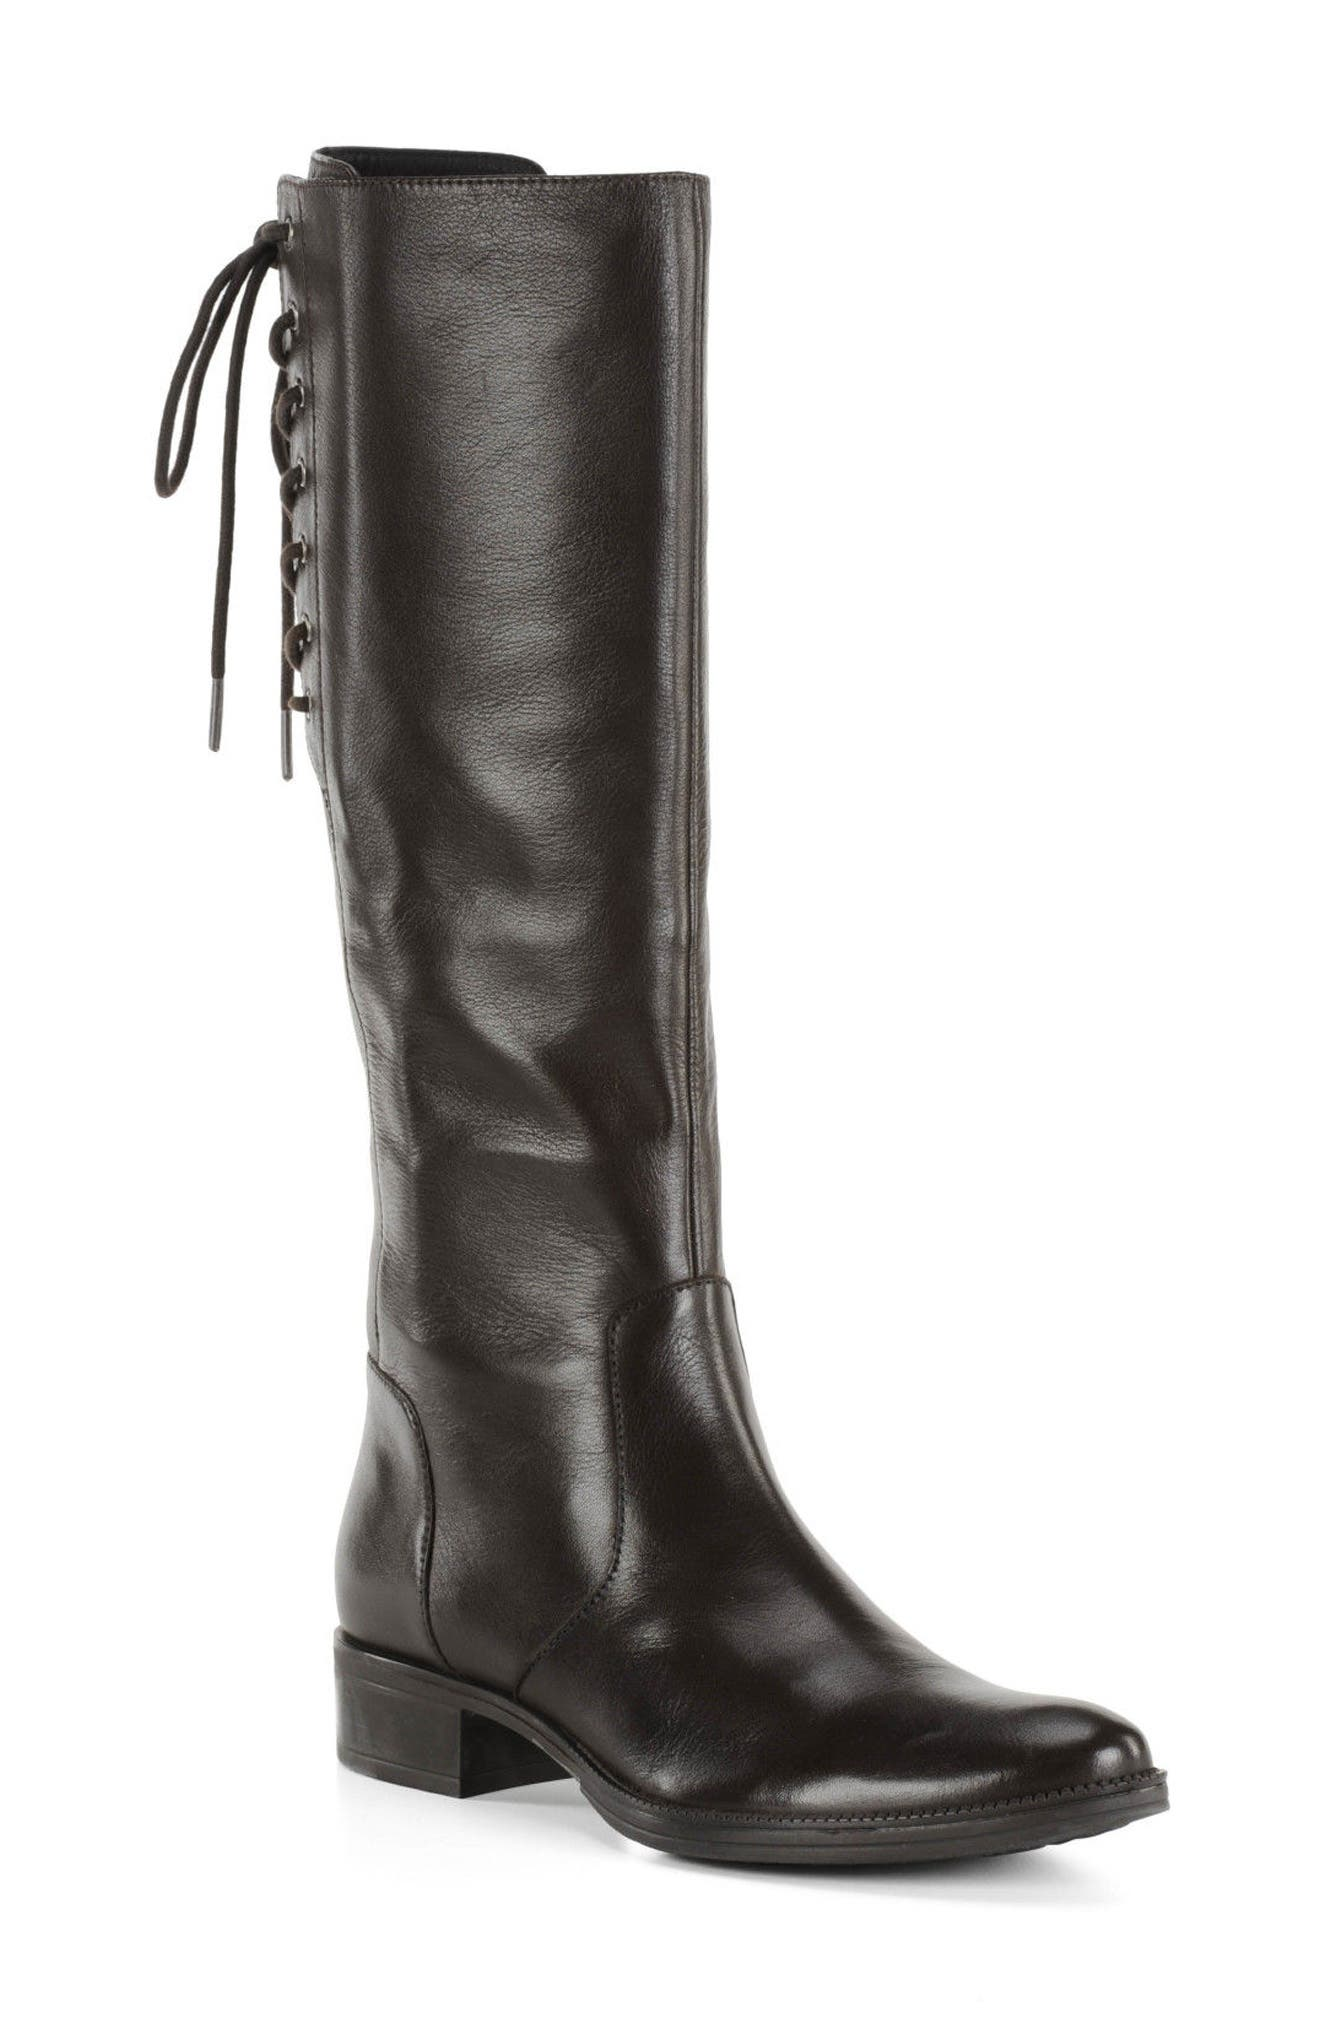 Mendi Tall Boot,                         Main,                         color, Coffee Leather